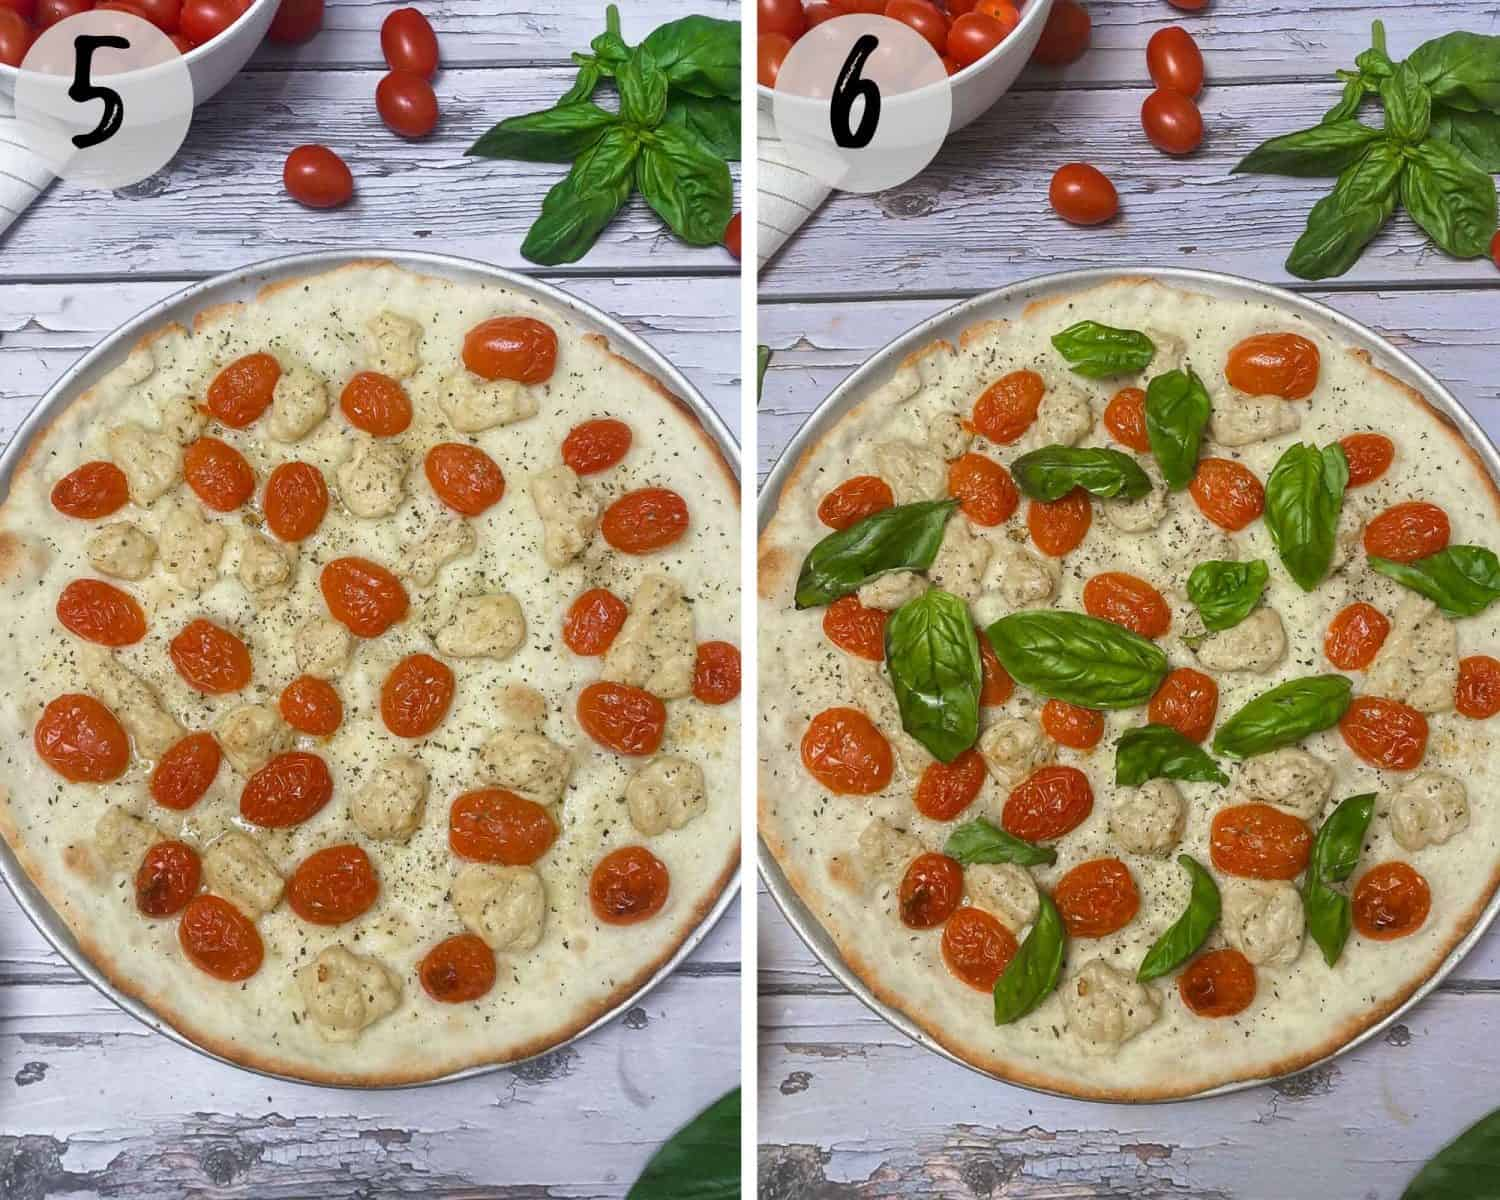 pizza dough with tomato and basil on top